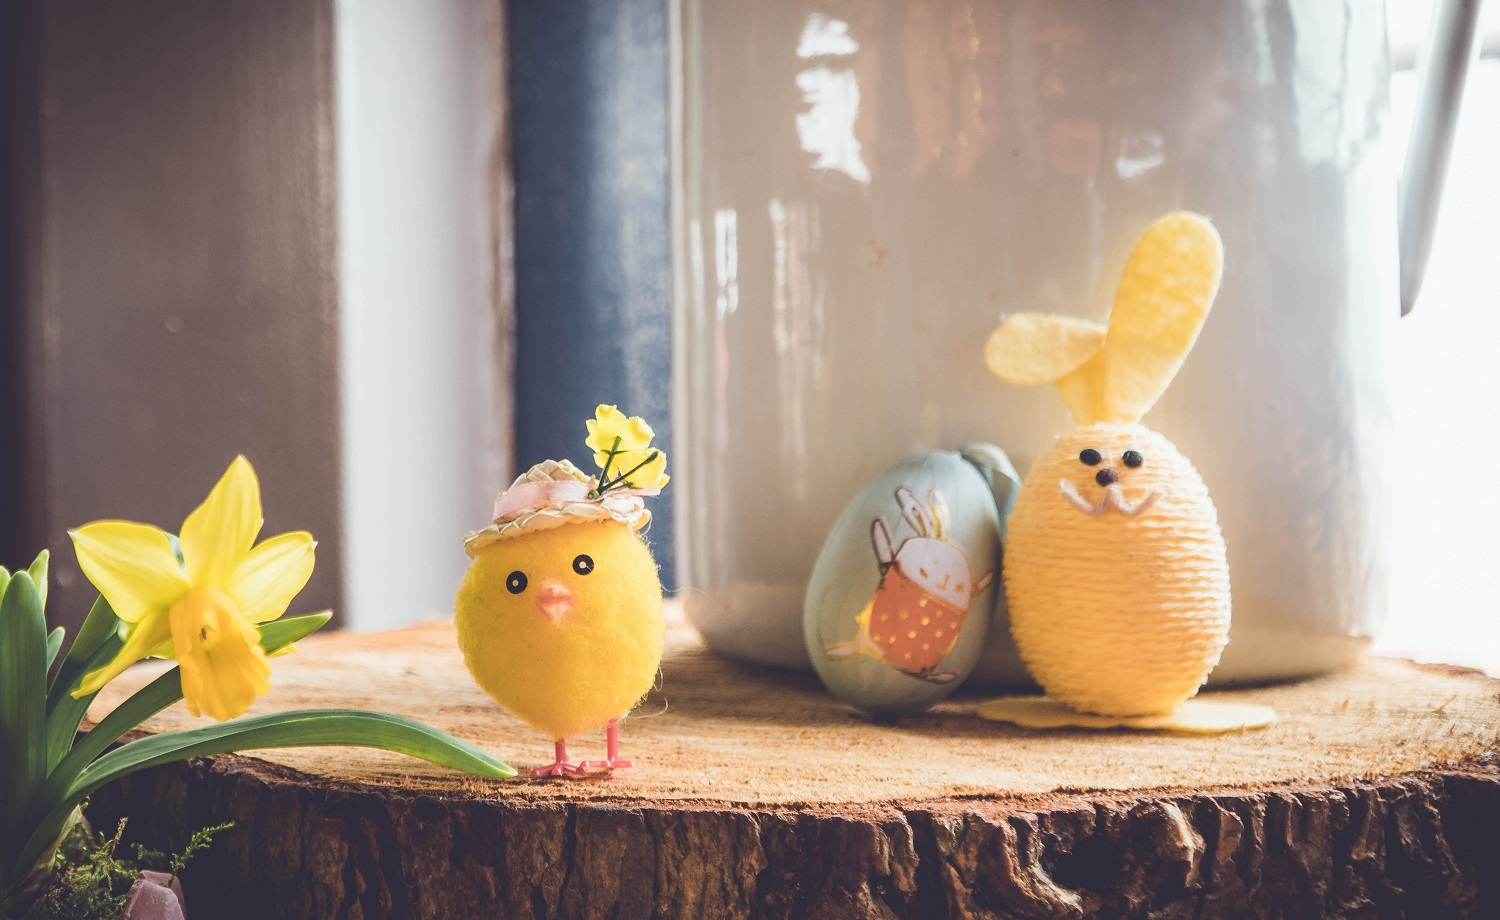 Easter is one of those times of year which can really ramp up midlife stress. Learn about how to naturally lower cortisol - your stress hormone - with my easy guide. www.midlifemenu.com/blog/reduce-midlifestress